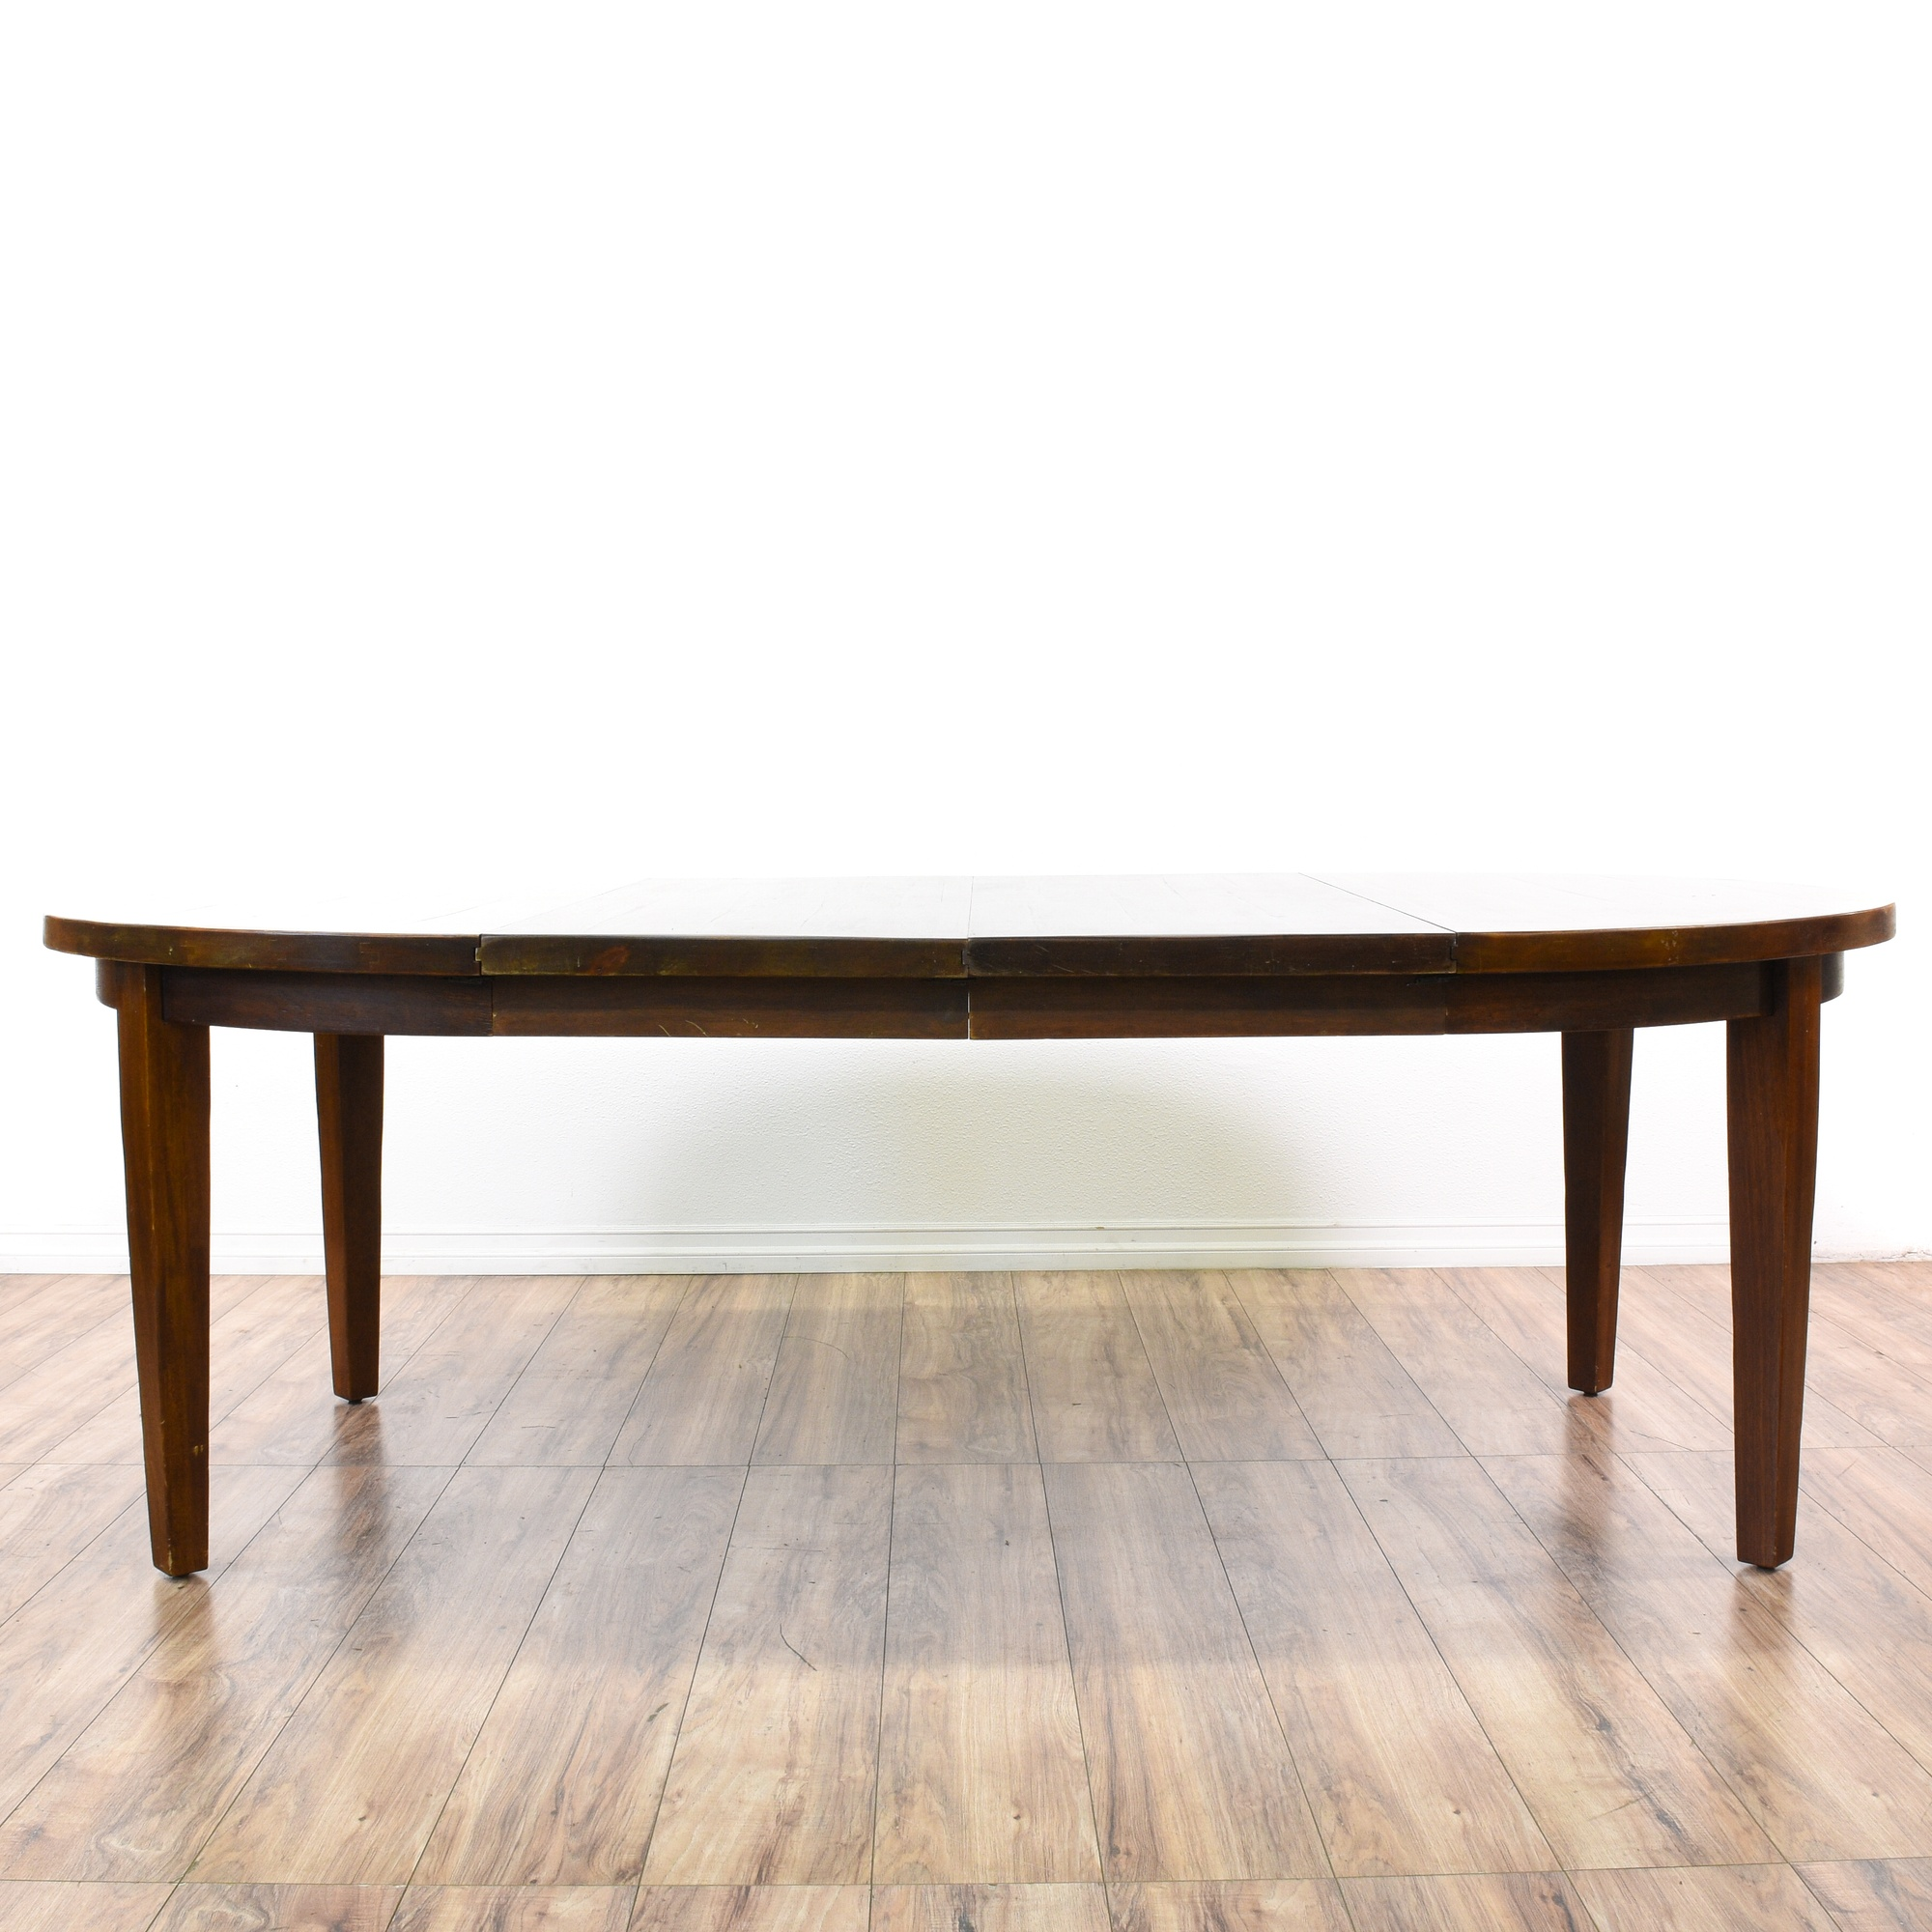 Dining Room Furniture San Diego: Round Solid Wood Dining Table W/ 2 Leaves